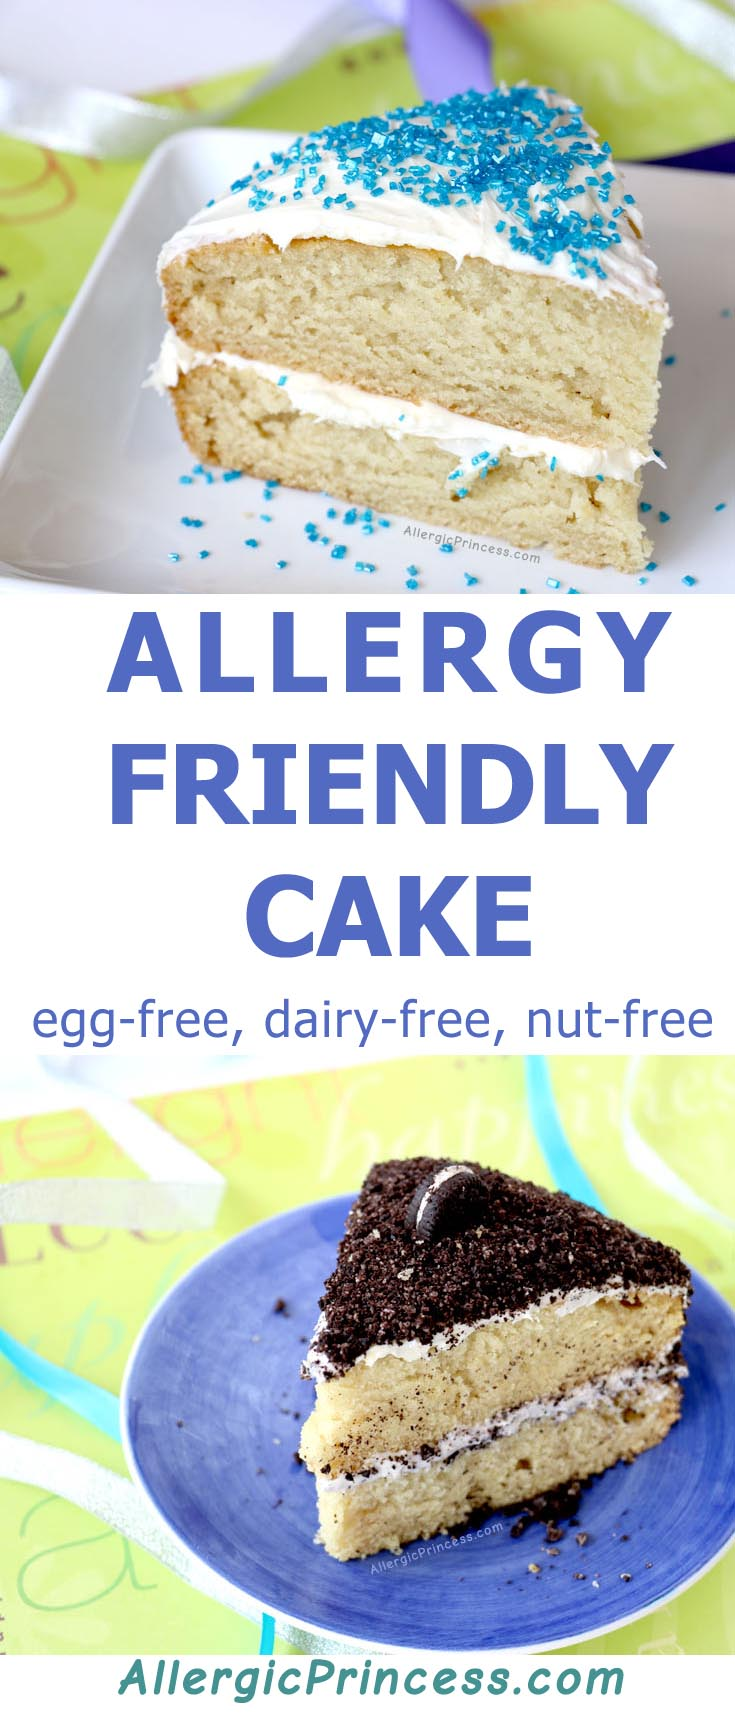 Egg Free Dairy Free Nut Free Cake Allergic Princess